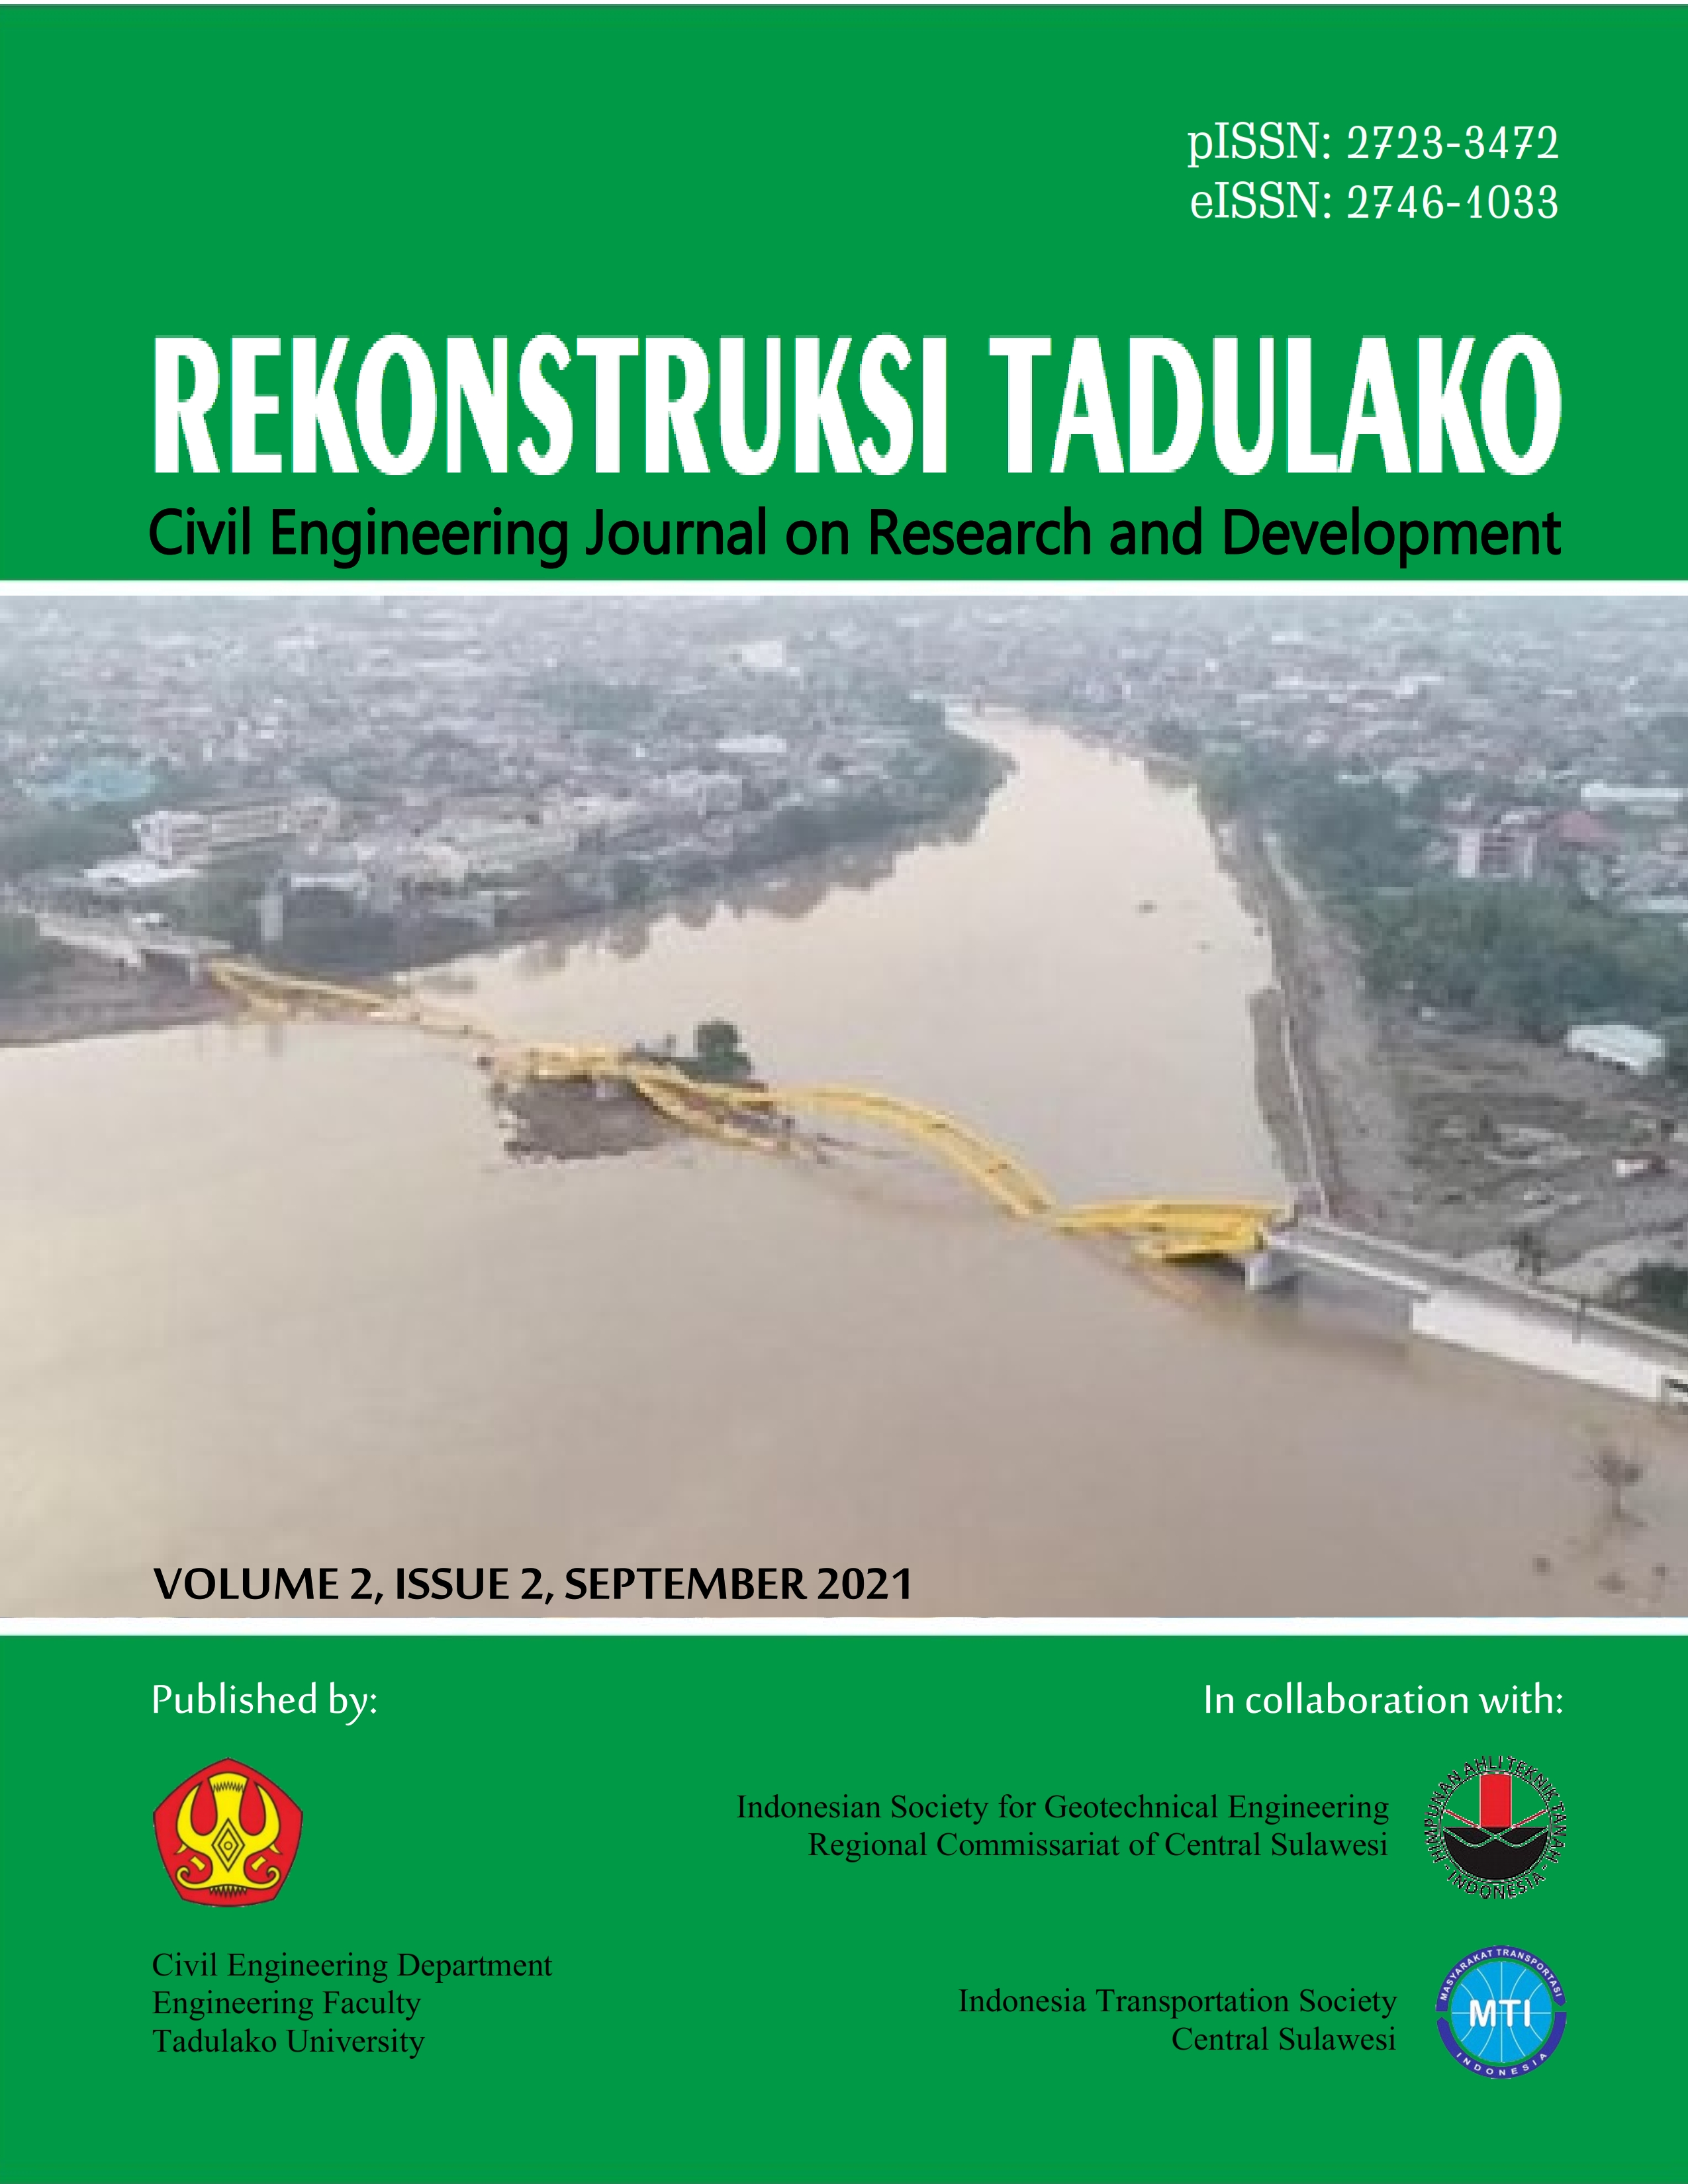 View Vol. 2, Issue 2 (September 2021)